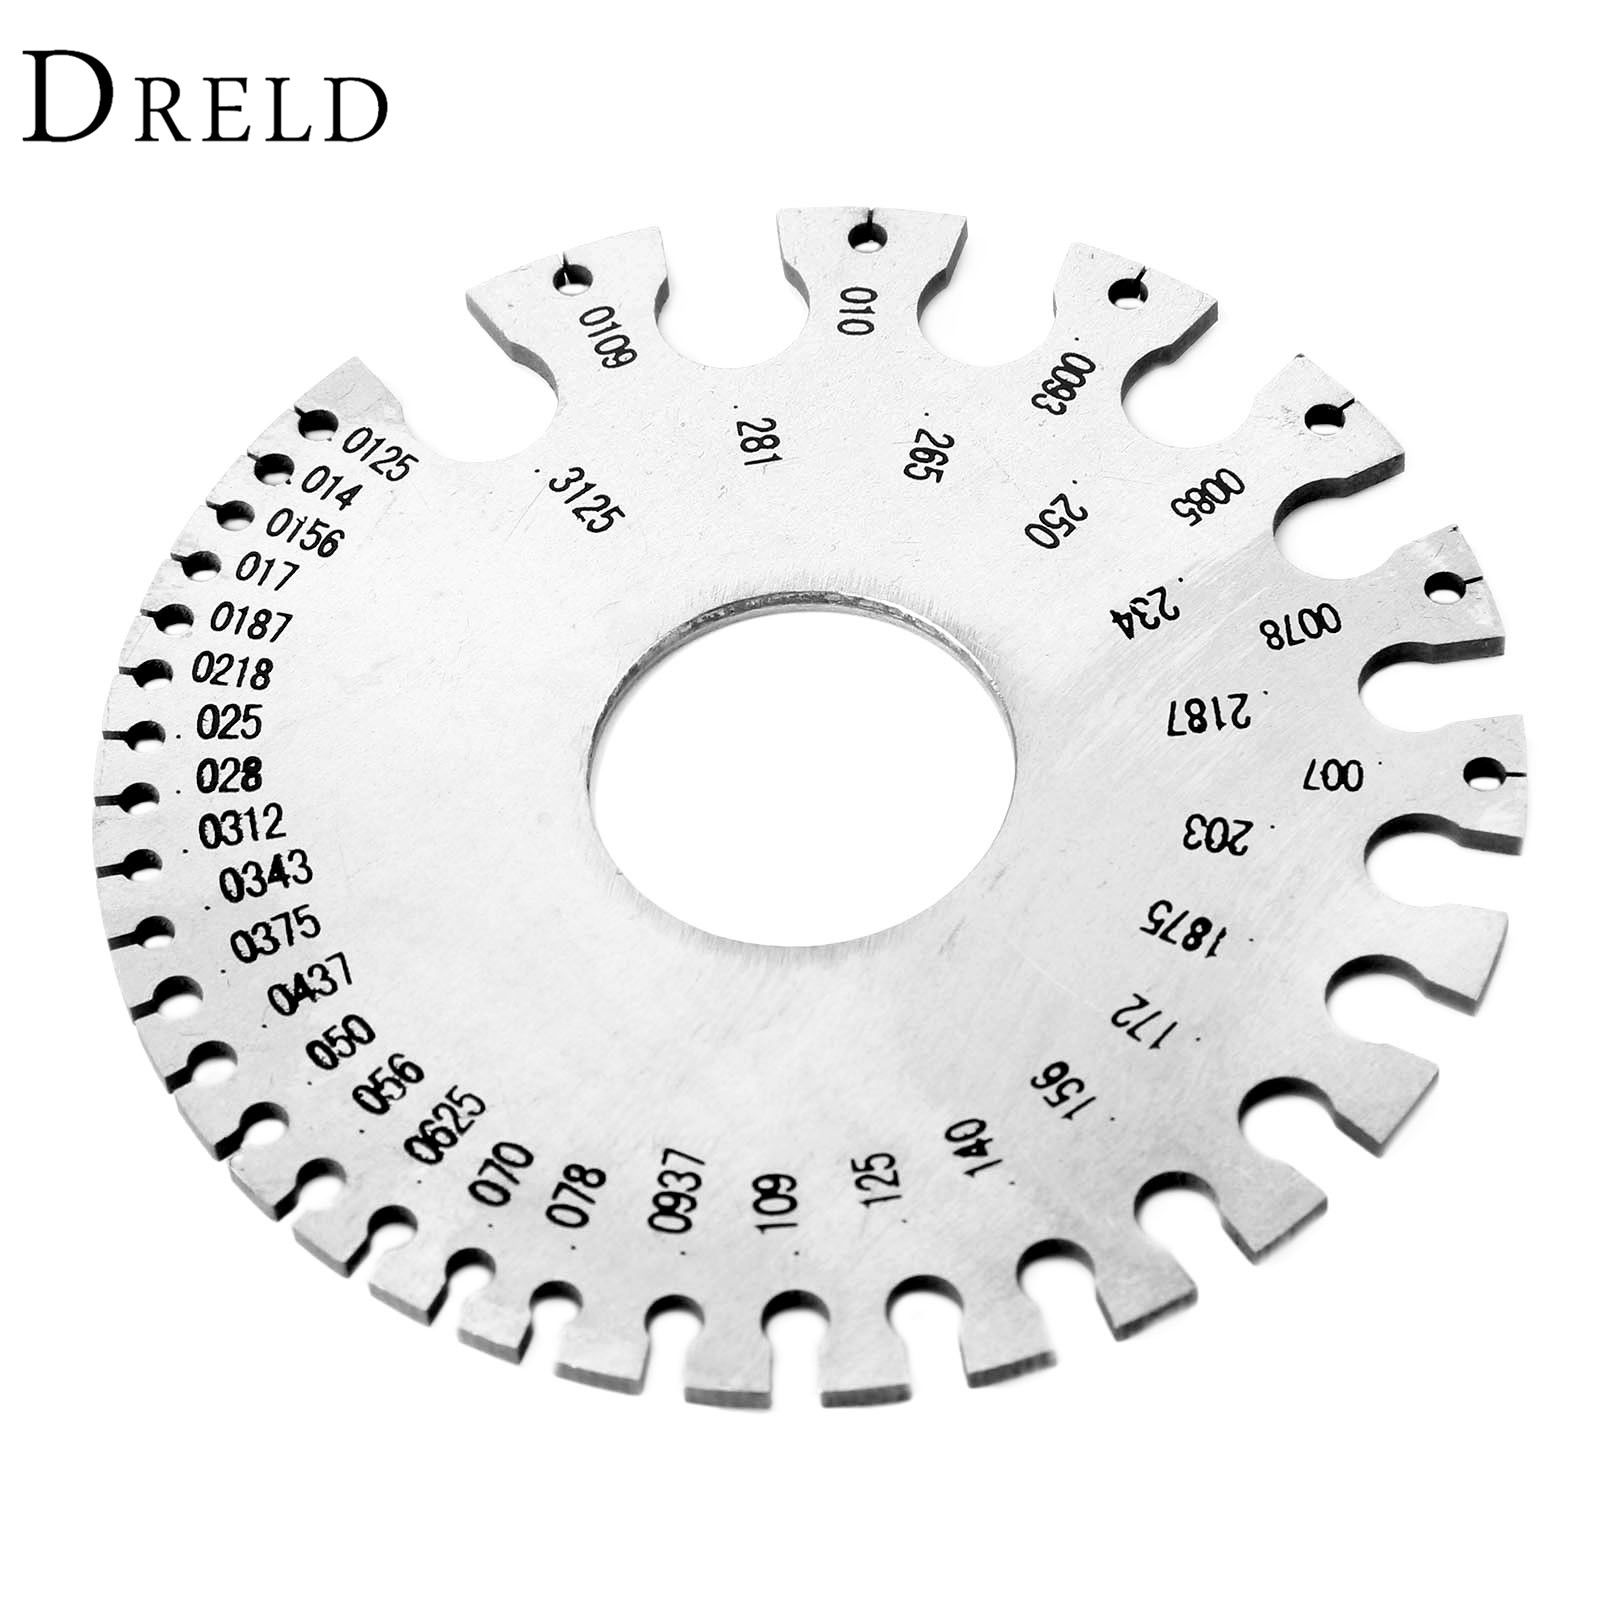 DRELD 0-36 Stainless Steel Wire Gauge Weld Diameter Gauge Welding ...